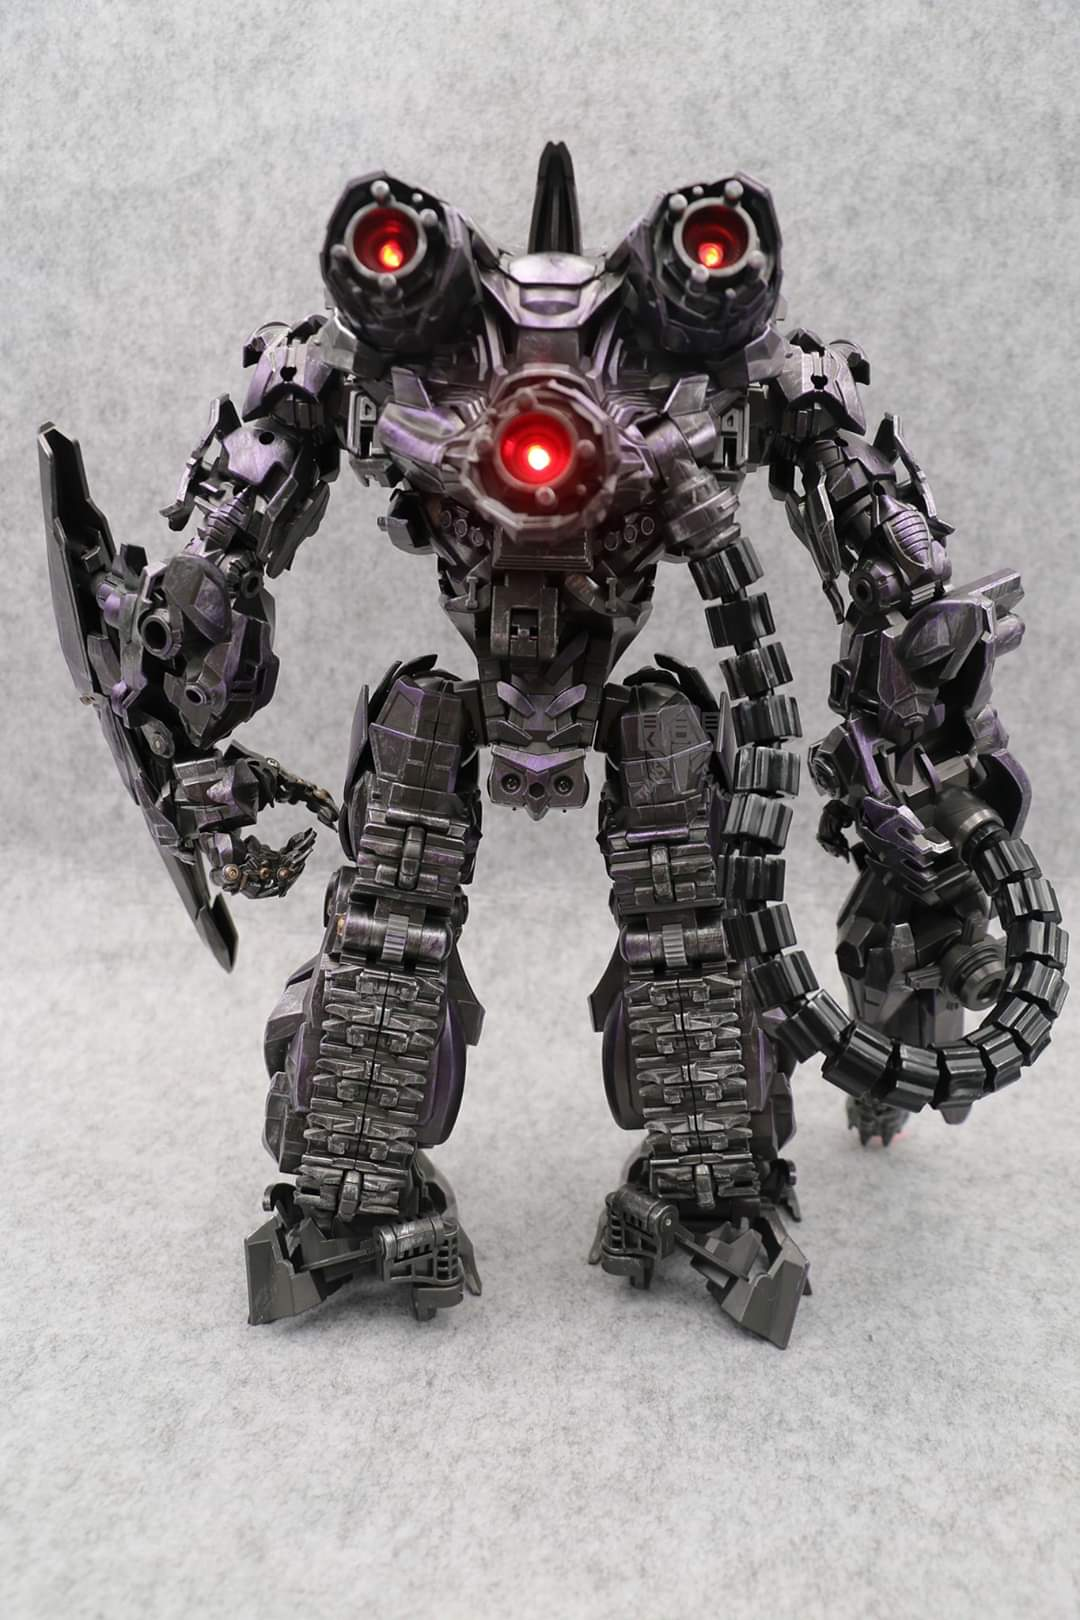 [Zeus Model] Produit Tiers - ZS-01 Guardian of the Universe - aka DOTM Shockwave 09Y1aqcl_o